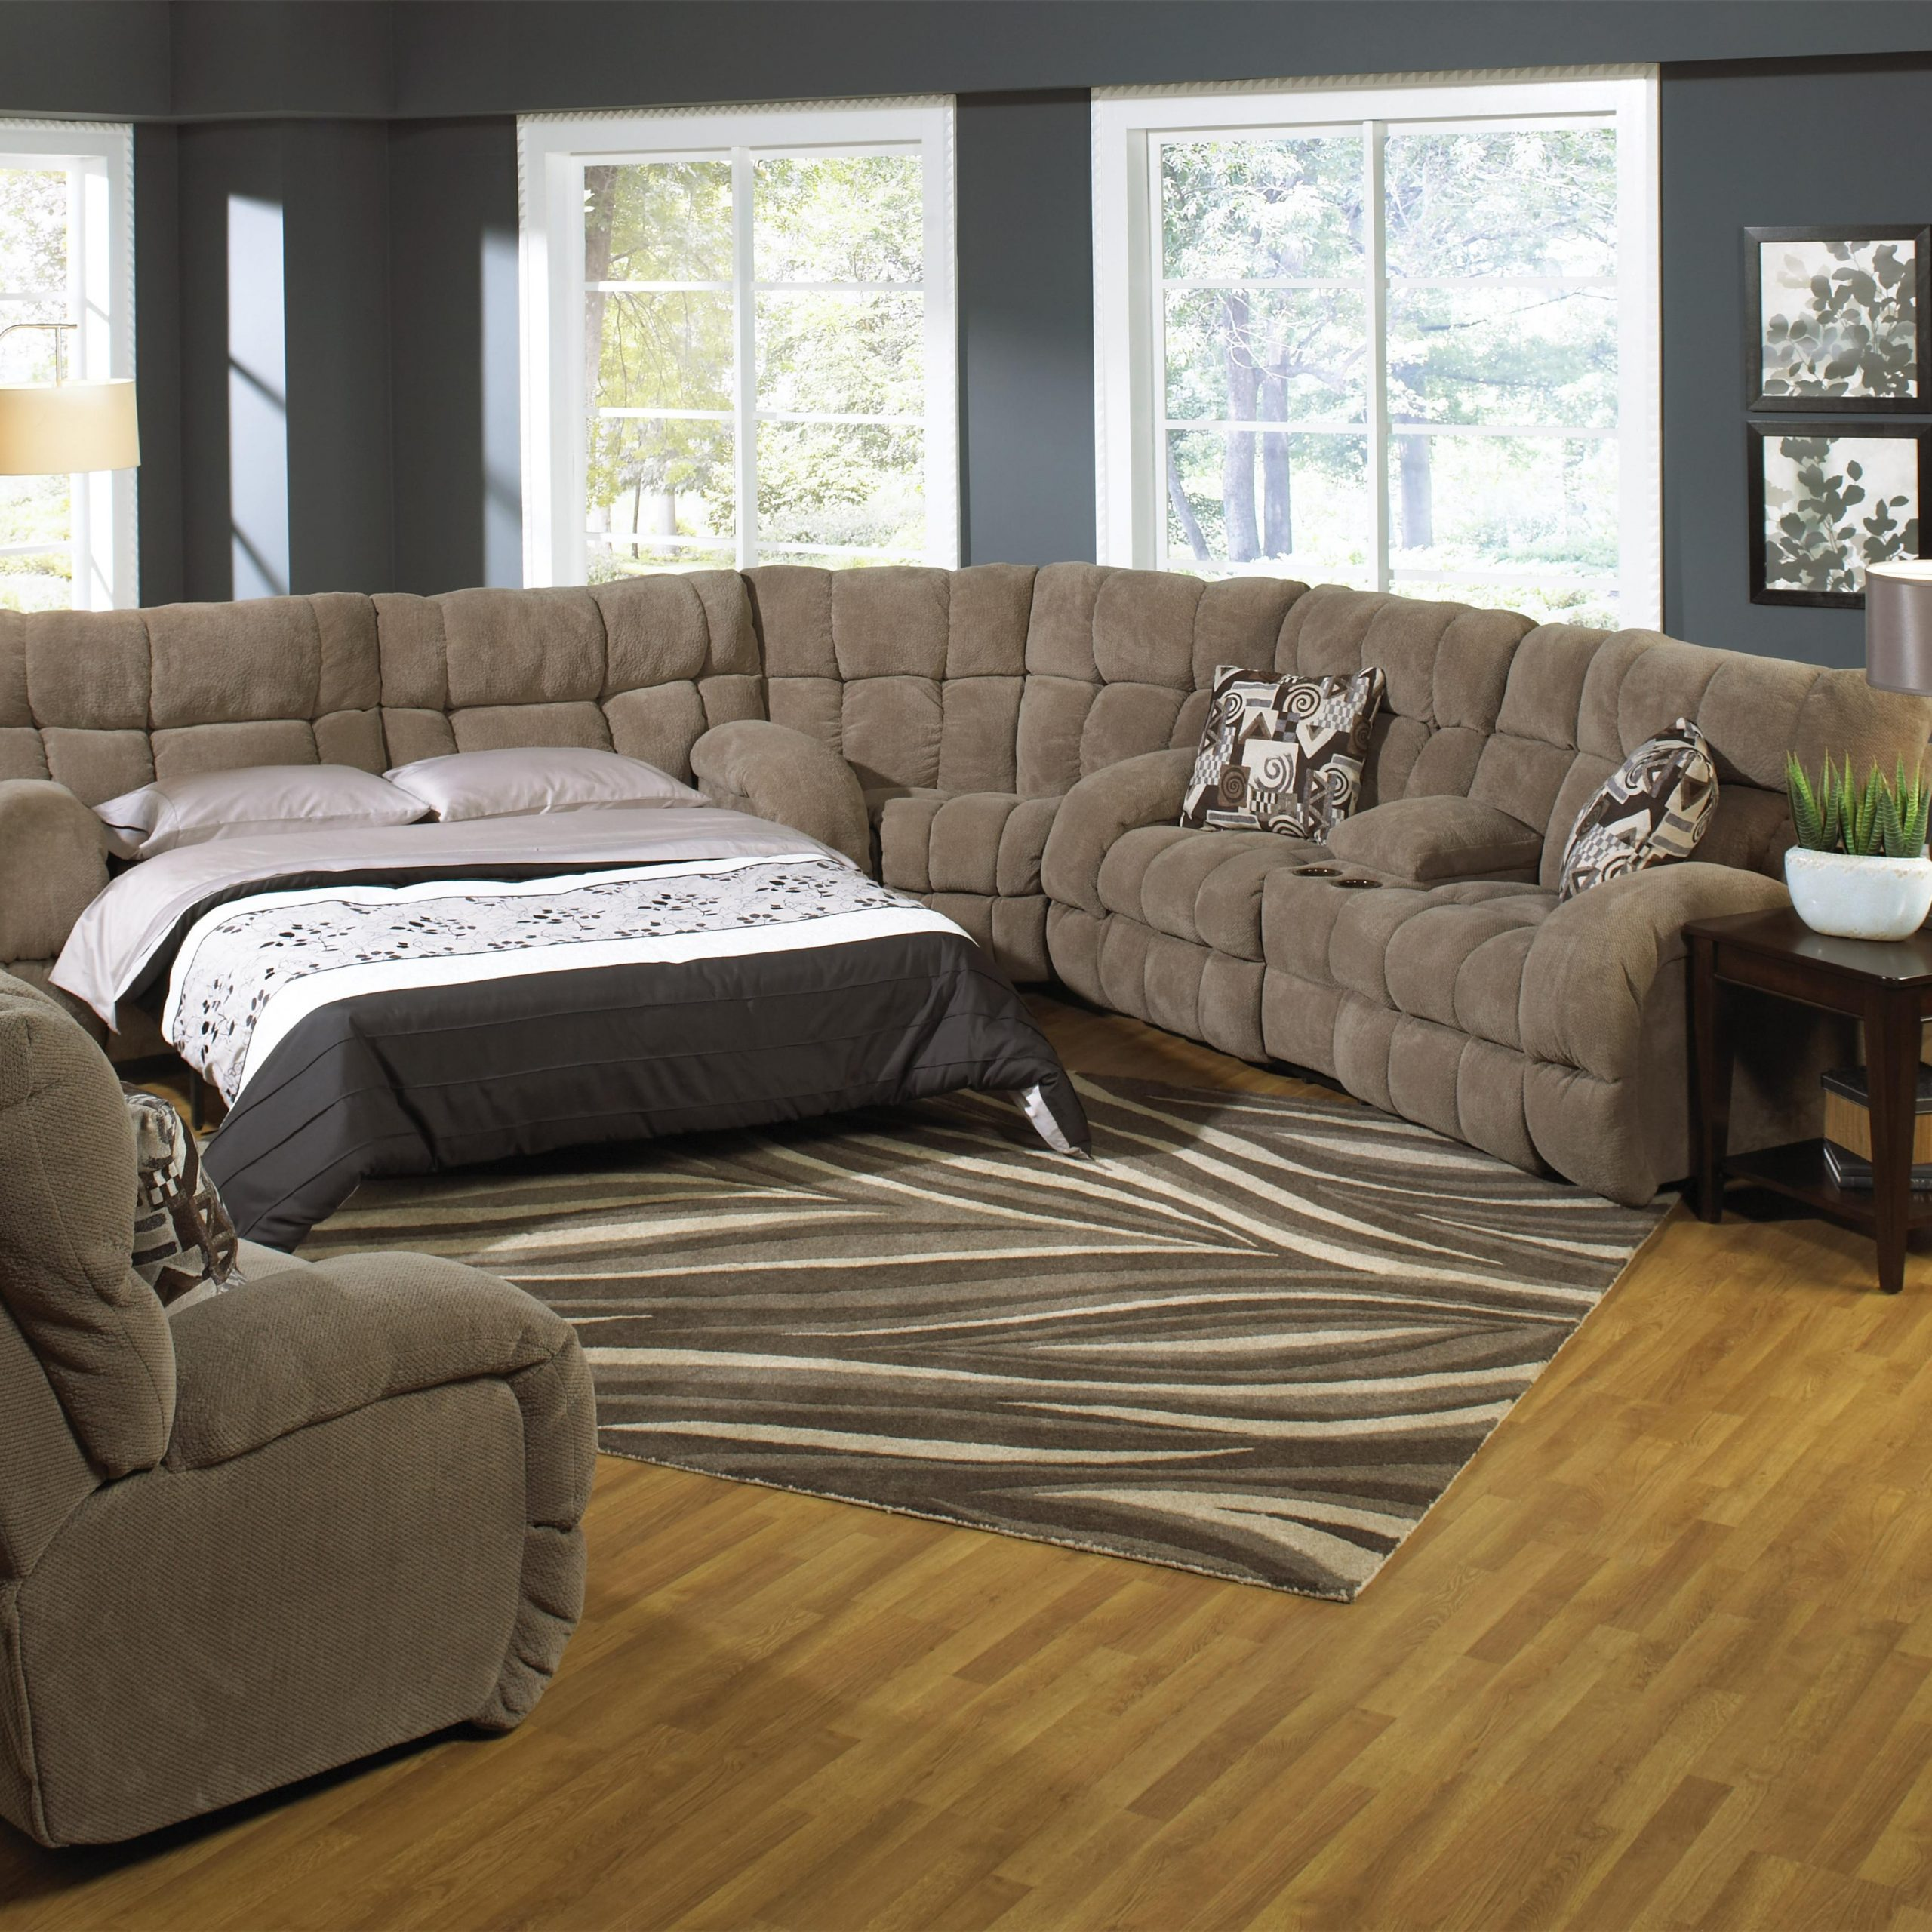 Sectional Sofa Sleepers For Better Sleep Quality And Pertaining To Newest Easton Small Space Sectional Futon Sofas (View 21 of 25)